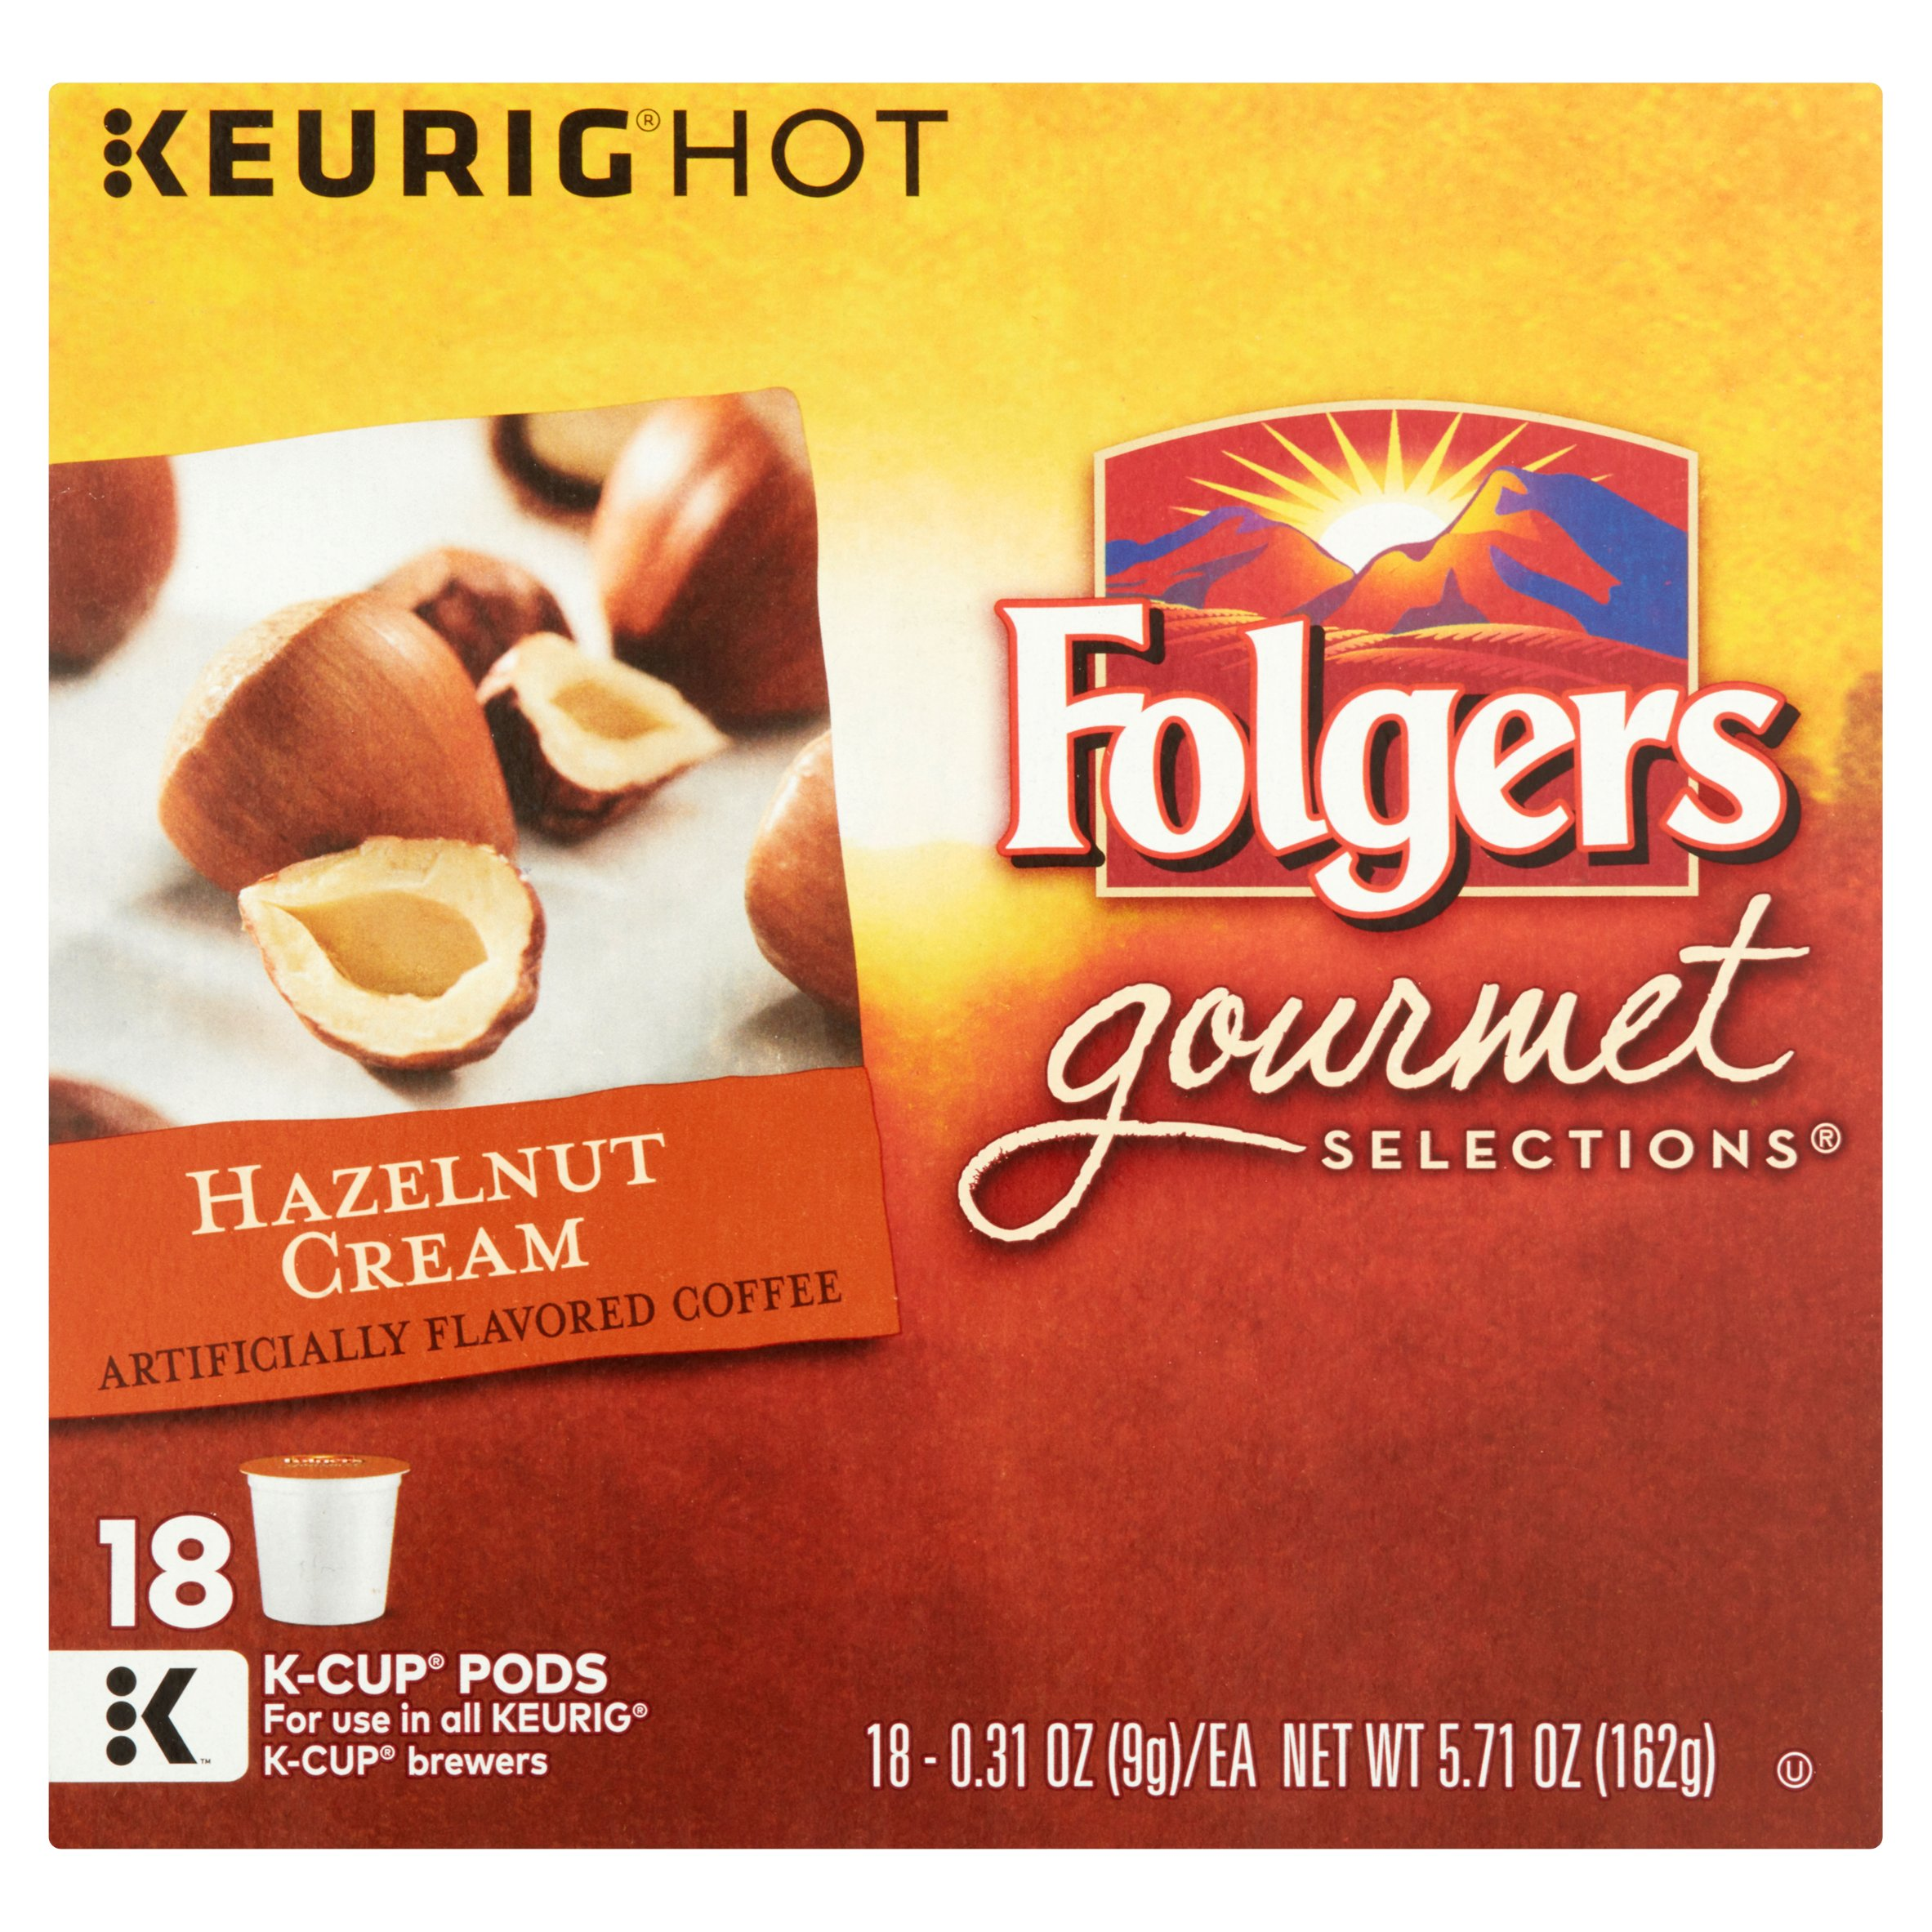 Keurig Hot - Folgers Gourmet Selections, Hazelnut Cream Coffee, K-Cup Pods, 0.31 oz, 18 count